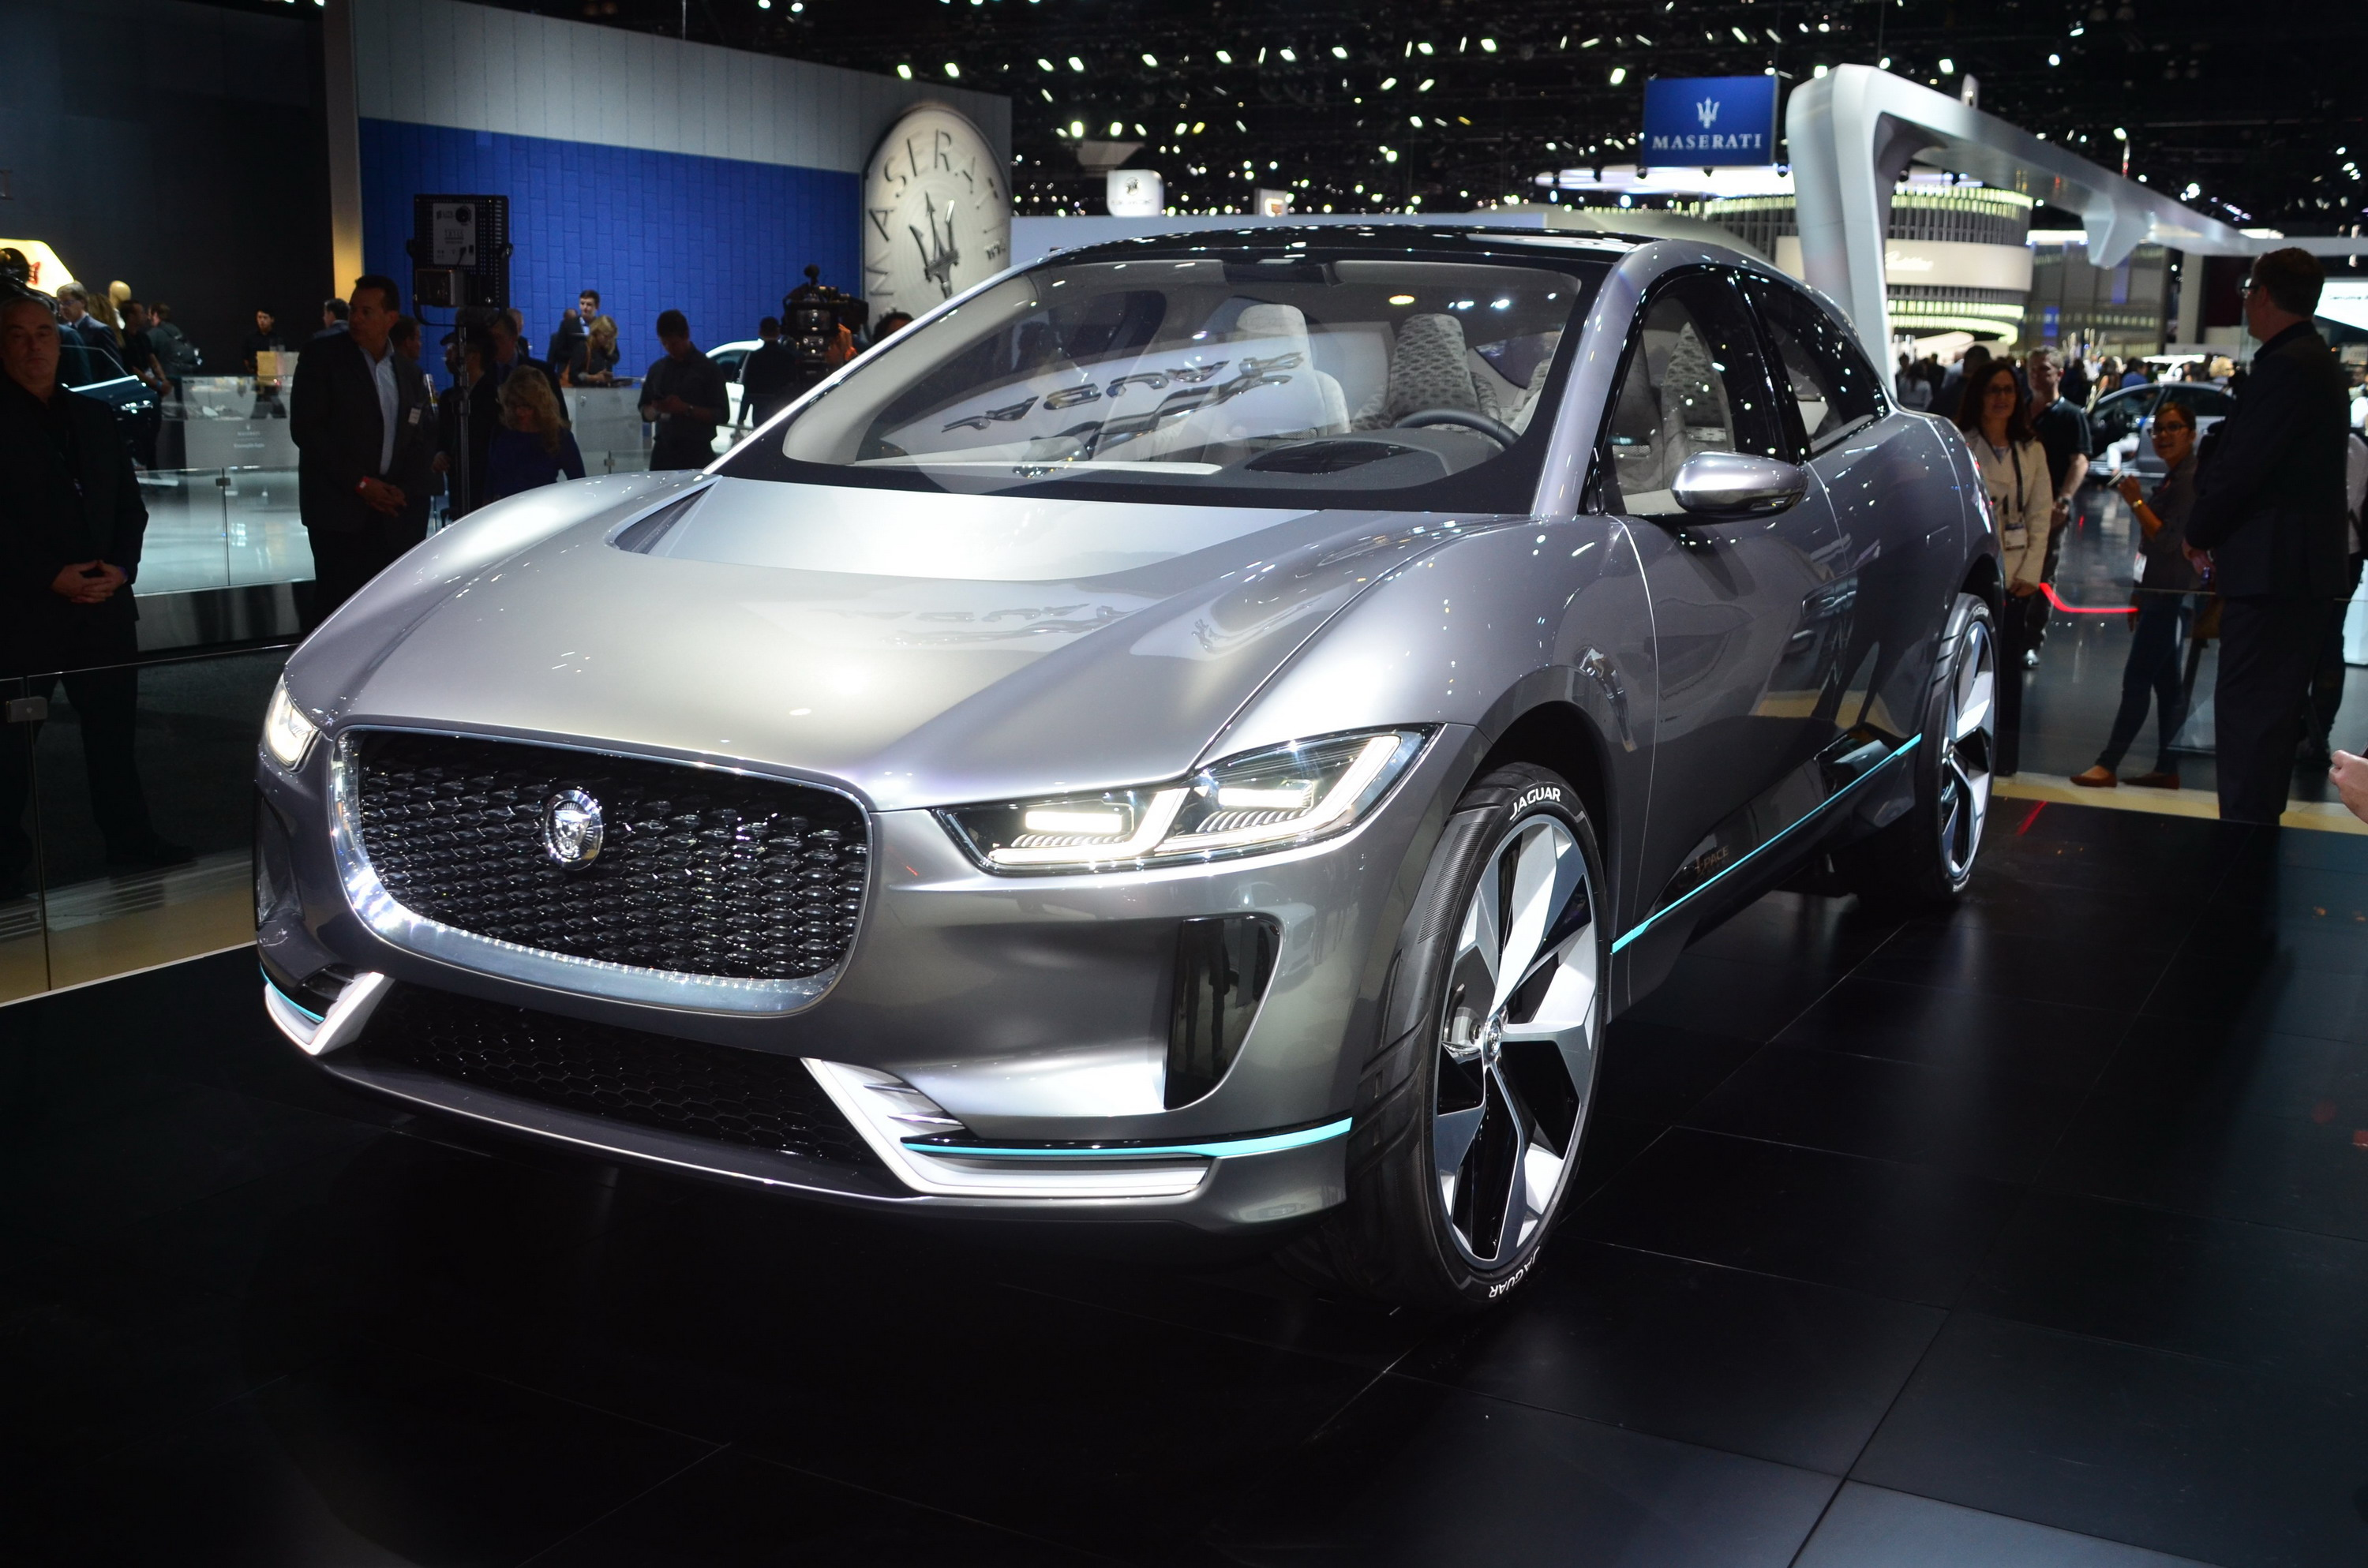 2016 Jaguar I-Pace Concept Gallery 696637   Top Speed